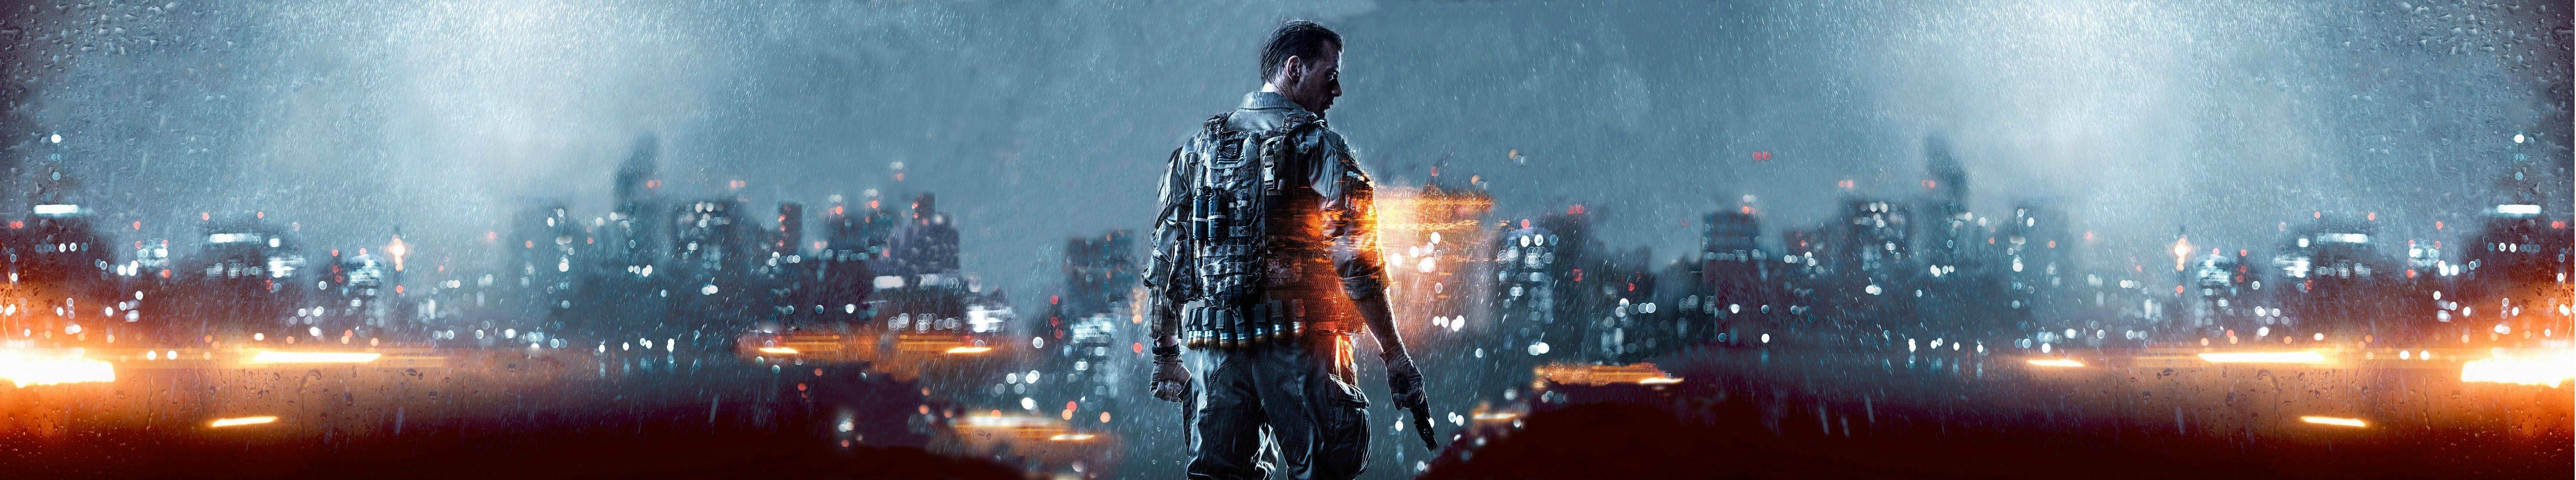 5760x1080] Battlefield 4 Triple screen wallpaper desktops